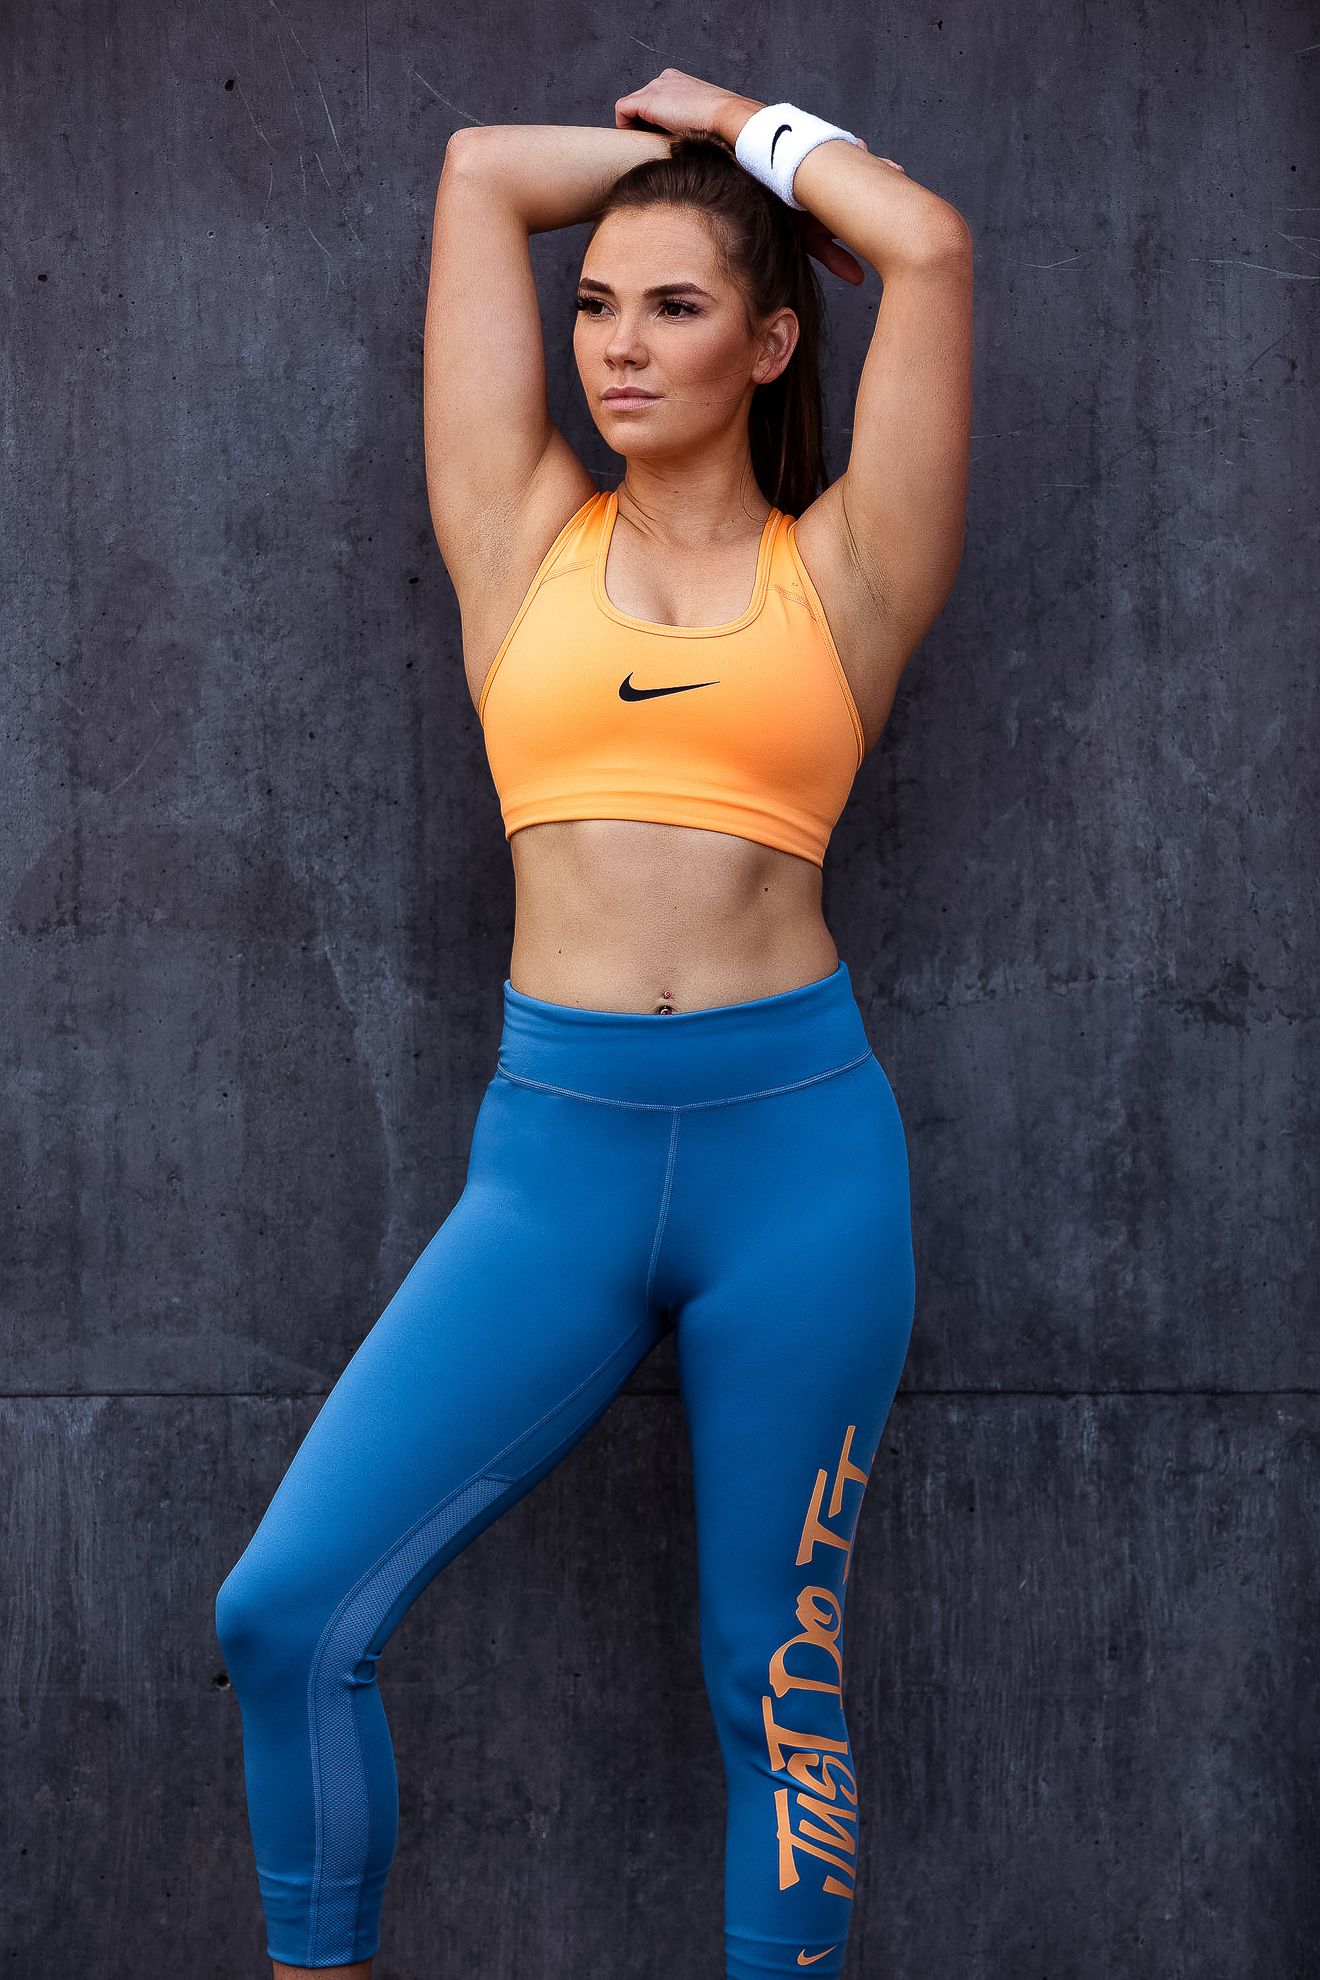 Ruby standing wearing Nike just do it blue leggings and Nike orange top standing in front of a grey concrete wall